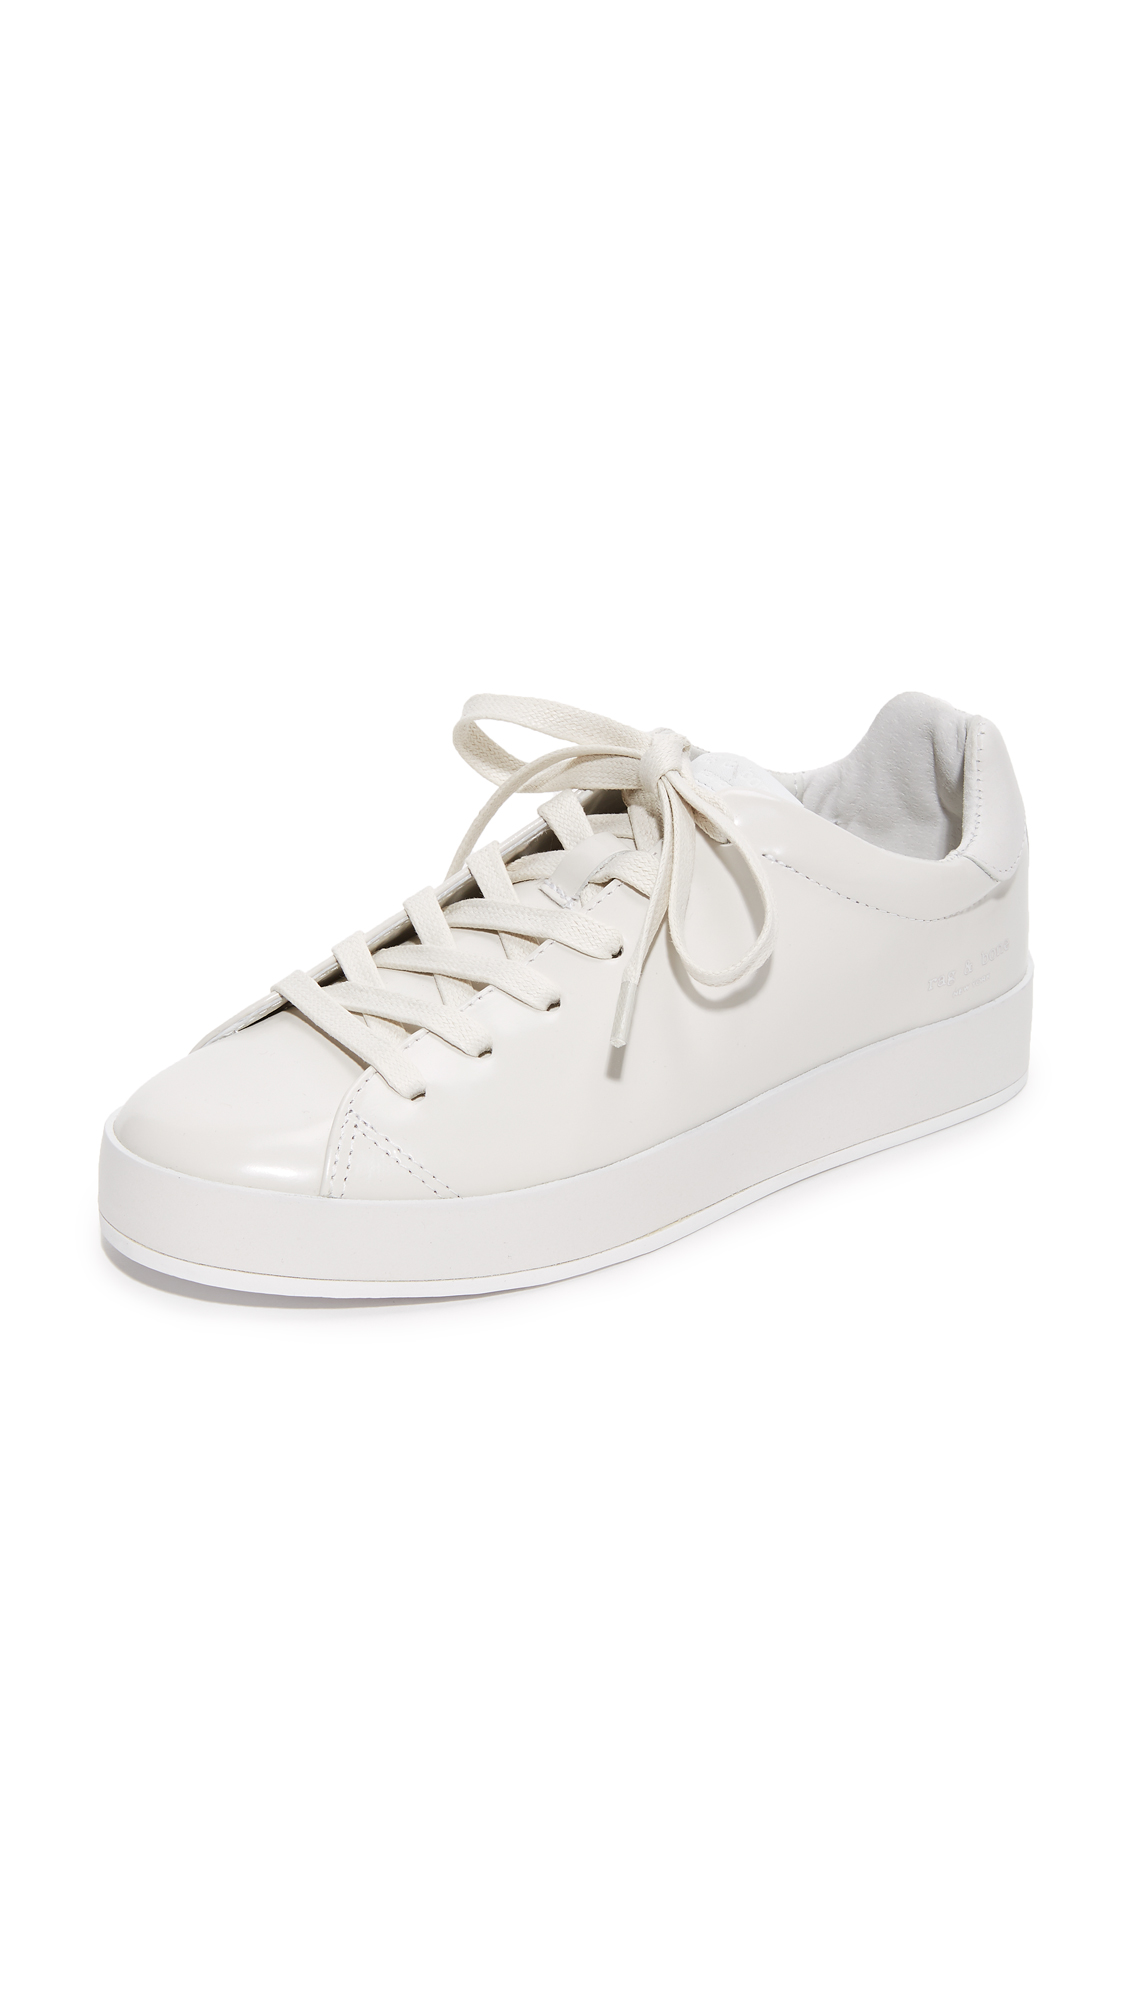 Rag & Bone RB1 Low Sneakers - Off White